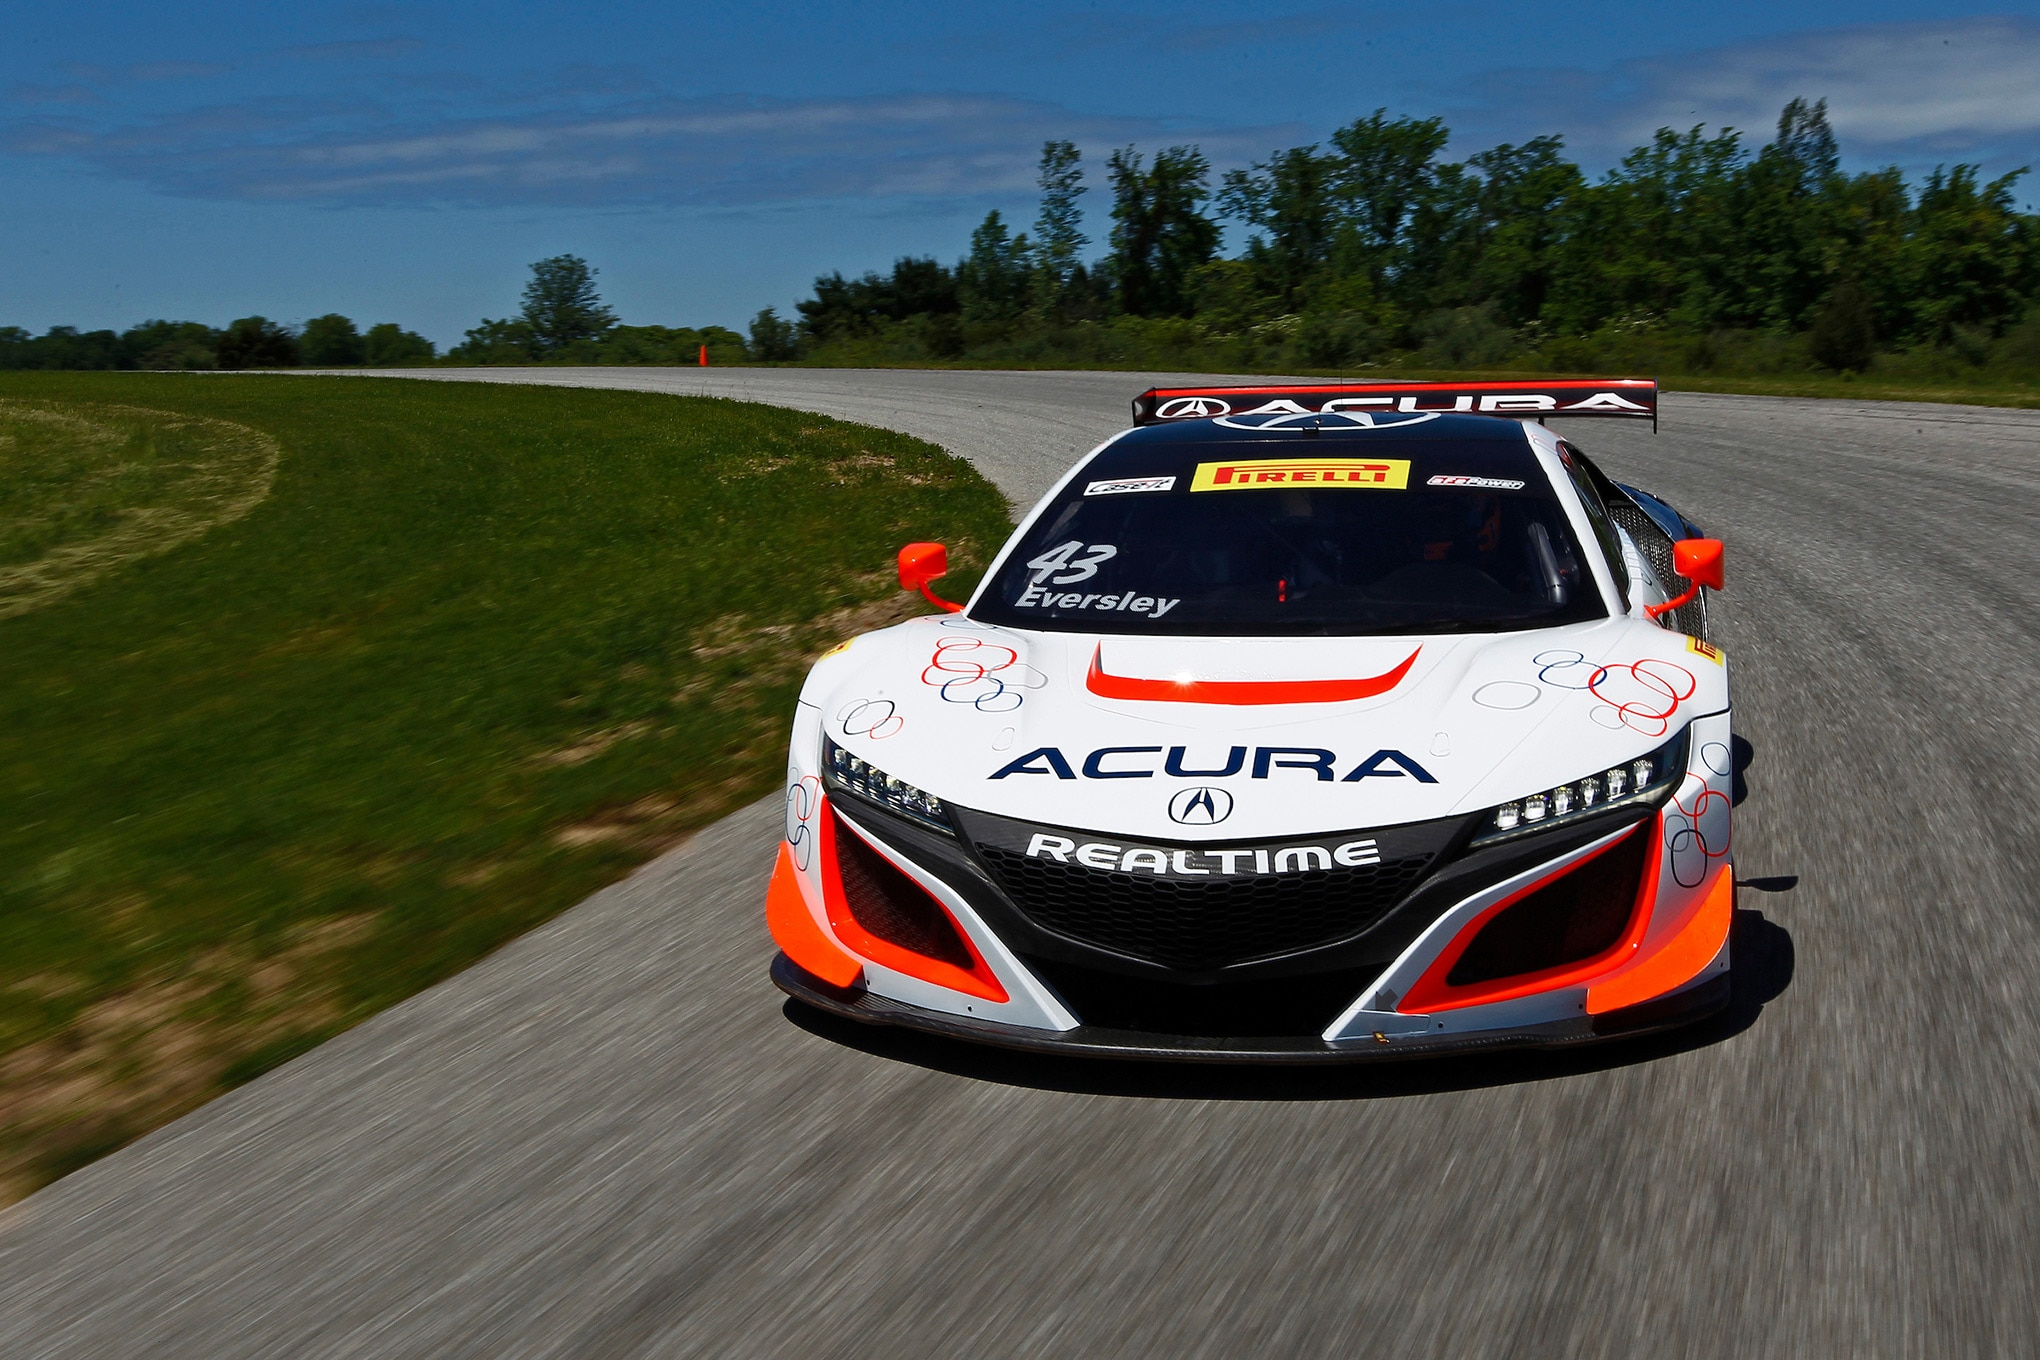 Team Penske joins with Acura for IMSA Prototype auto in 2018